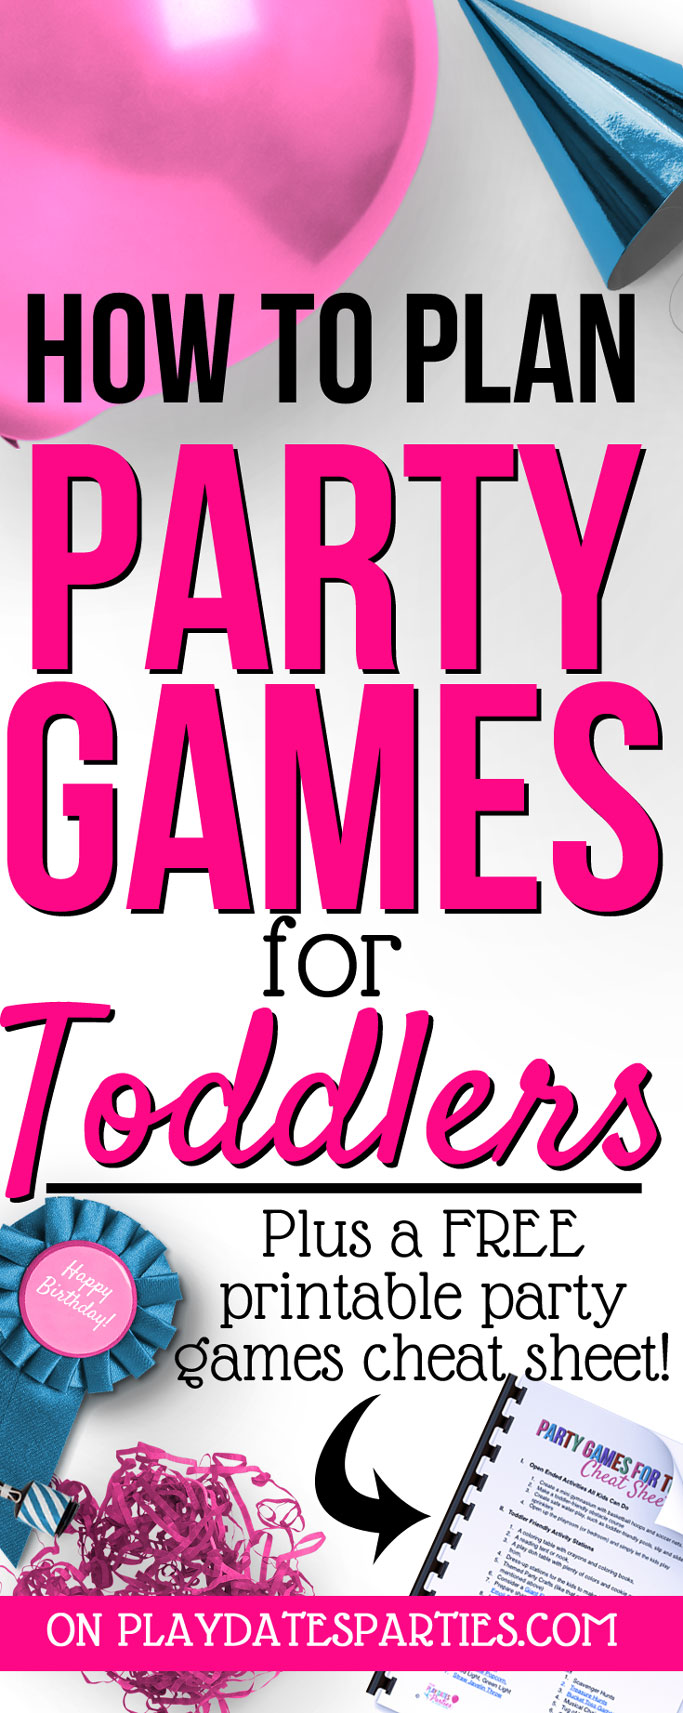 Have a gaggle of toddlers coming over for a party? No sweat! Head to playdatesparties.com an easy 3-step plan for party games for toddlers that won't stress you out! #toddlers #party #birthday #kids